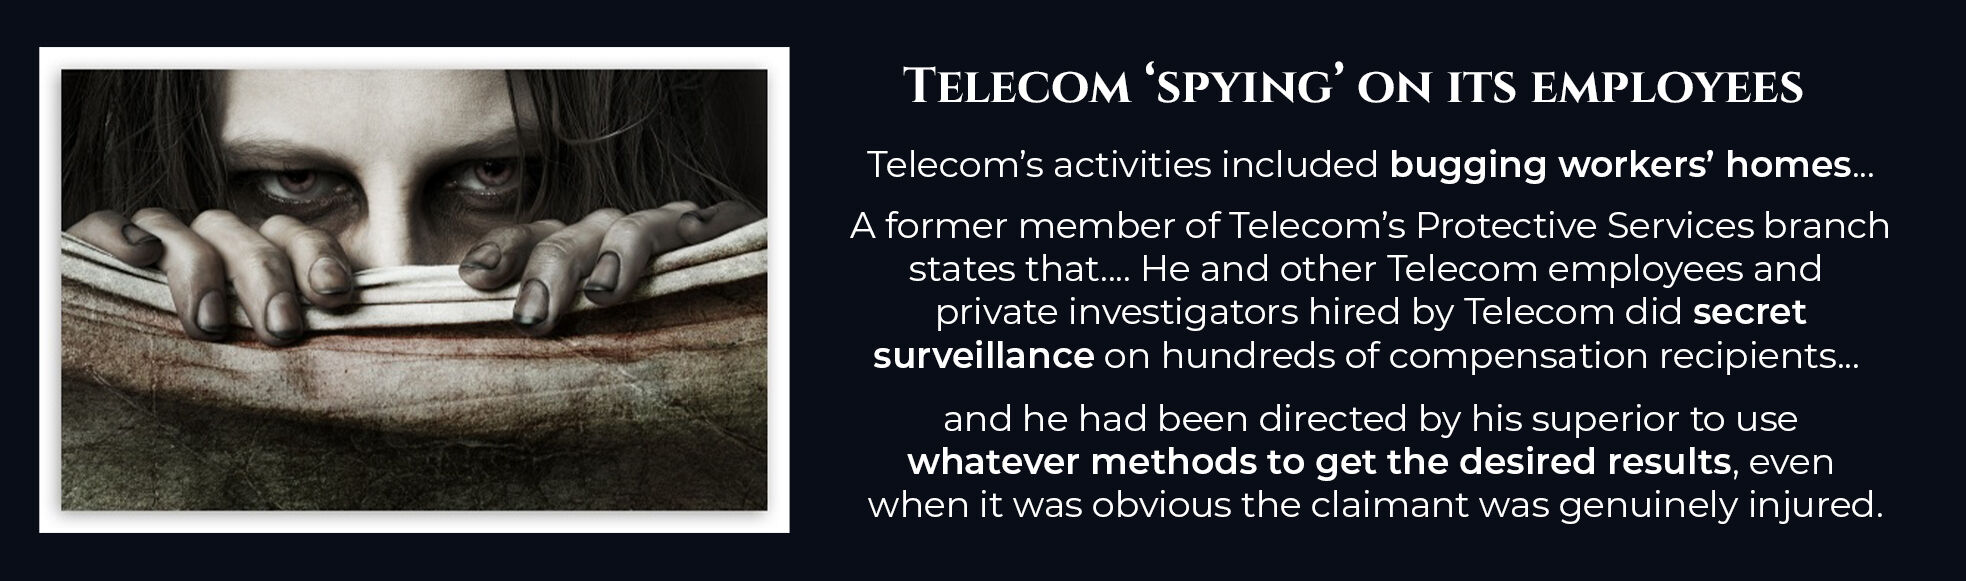 Absent Justice - Telstra Spying on its Employees